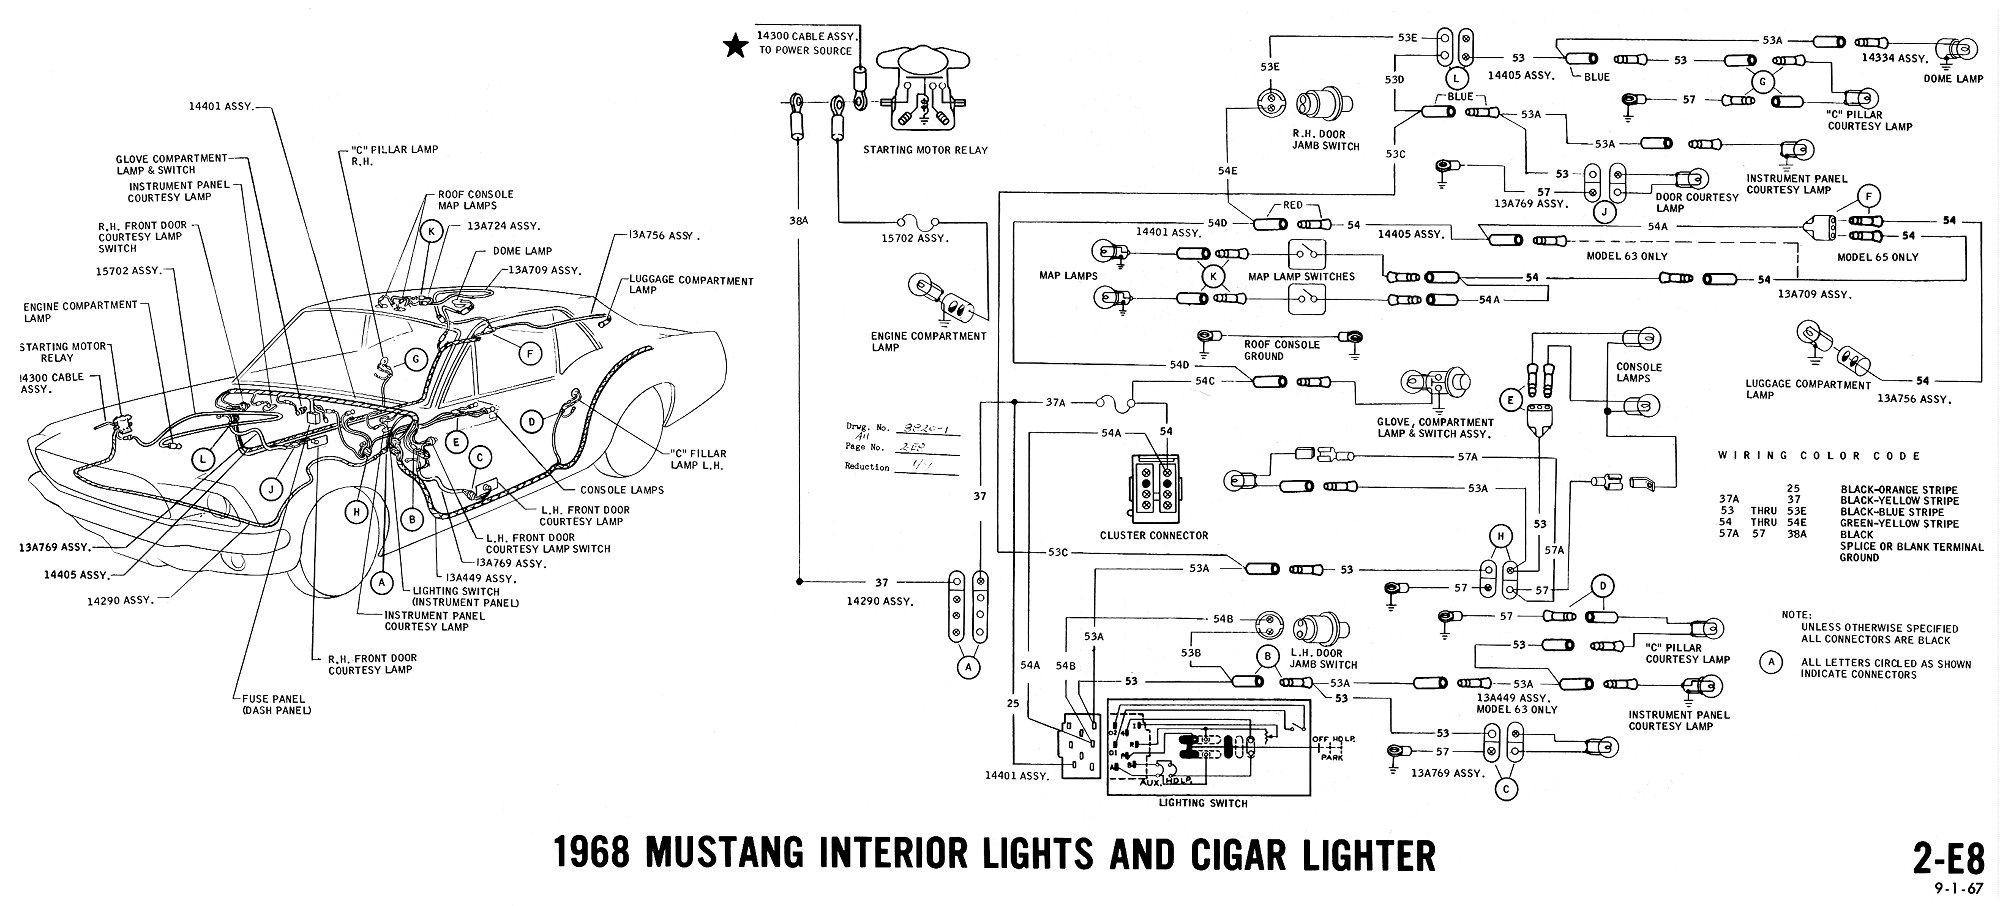 E8 1968 mustang wiring diagrams evolving software 67 mustang complete wiring harness at gsmx.co